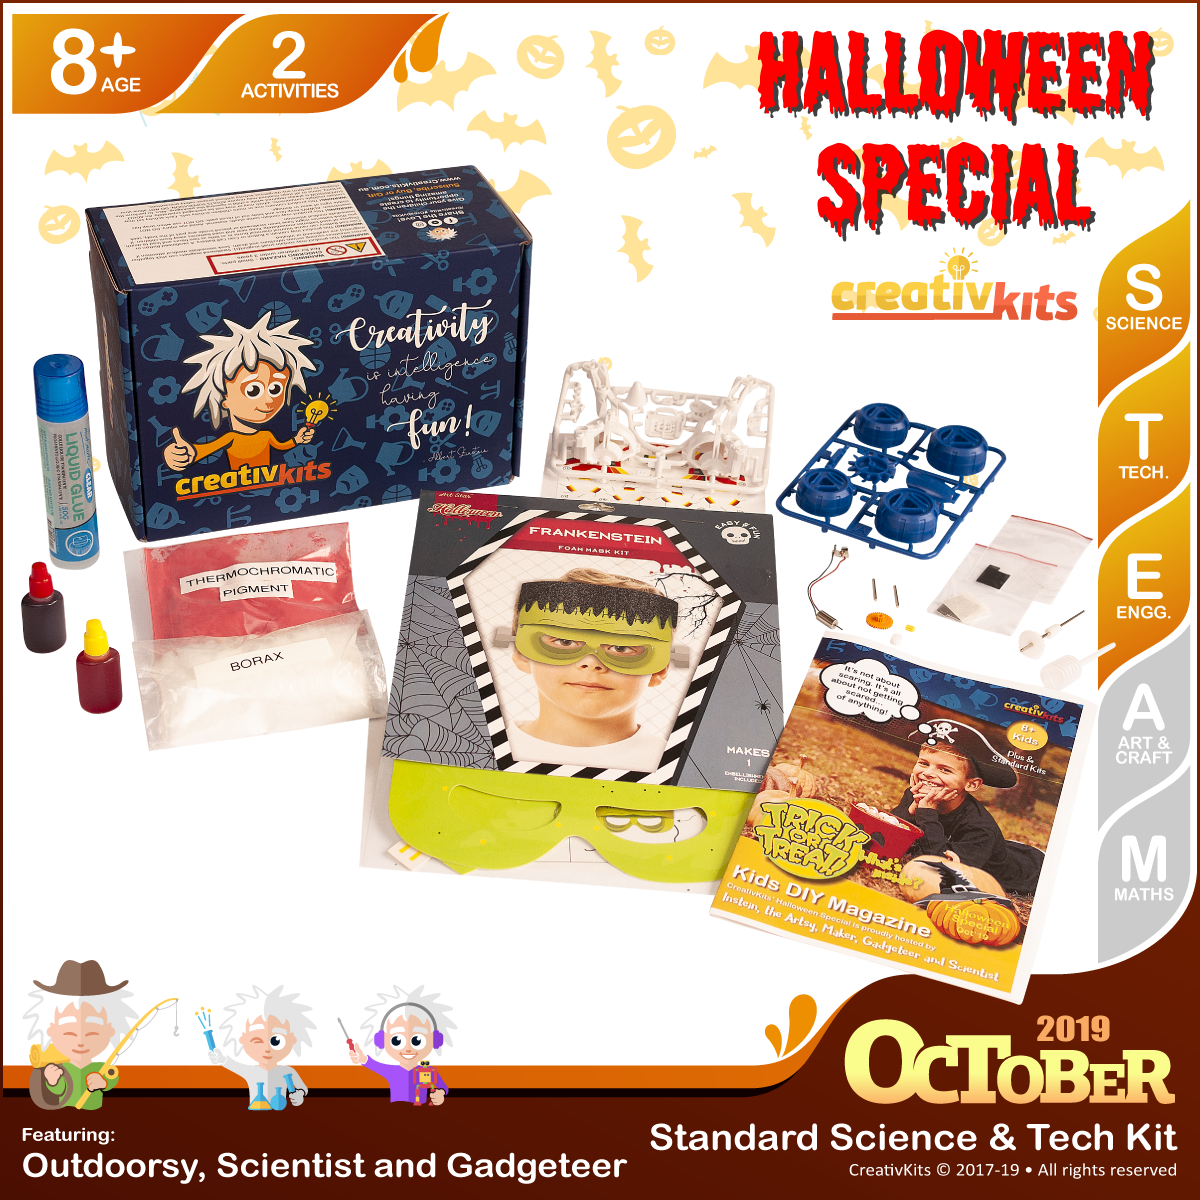 October Standard Science & Tech. Kit • Age 8 plus • BYO Baja Runner & MYO Magical Slime